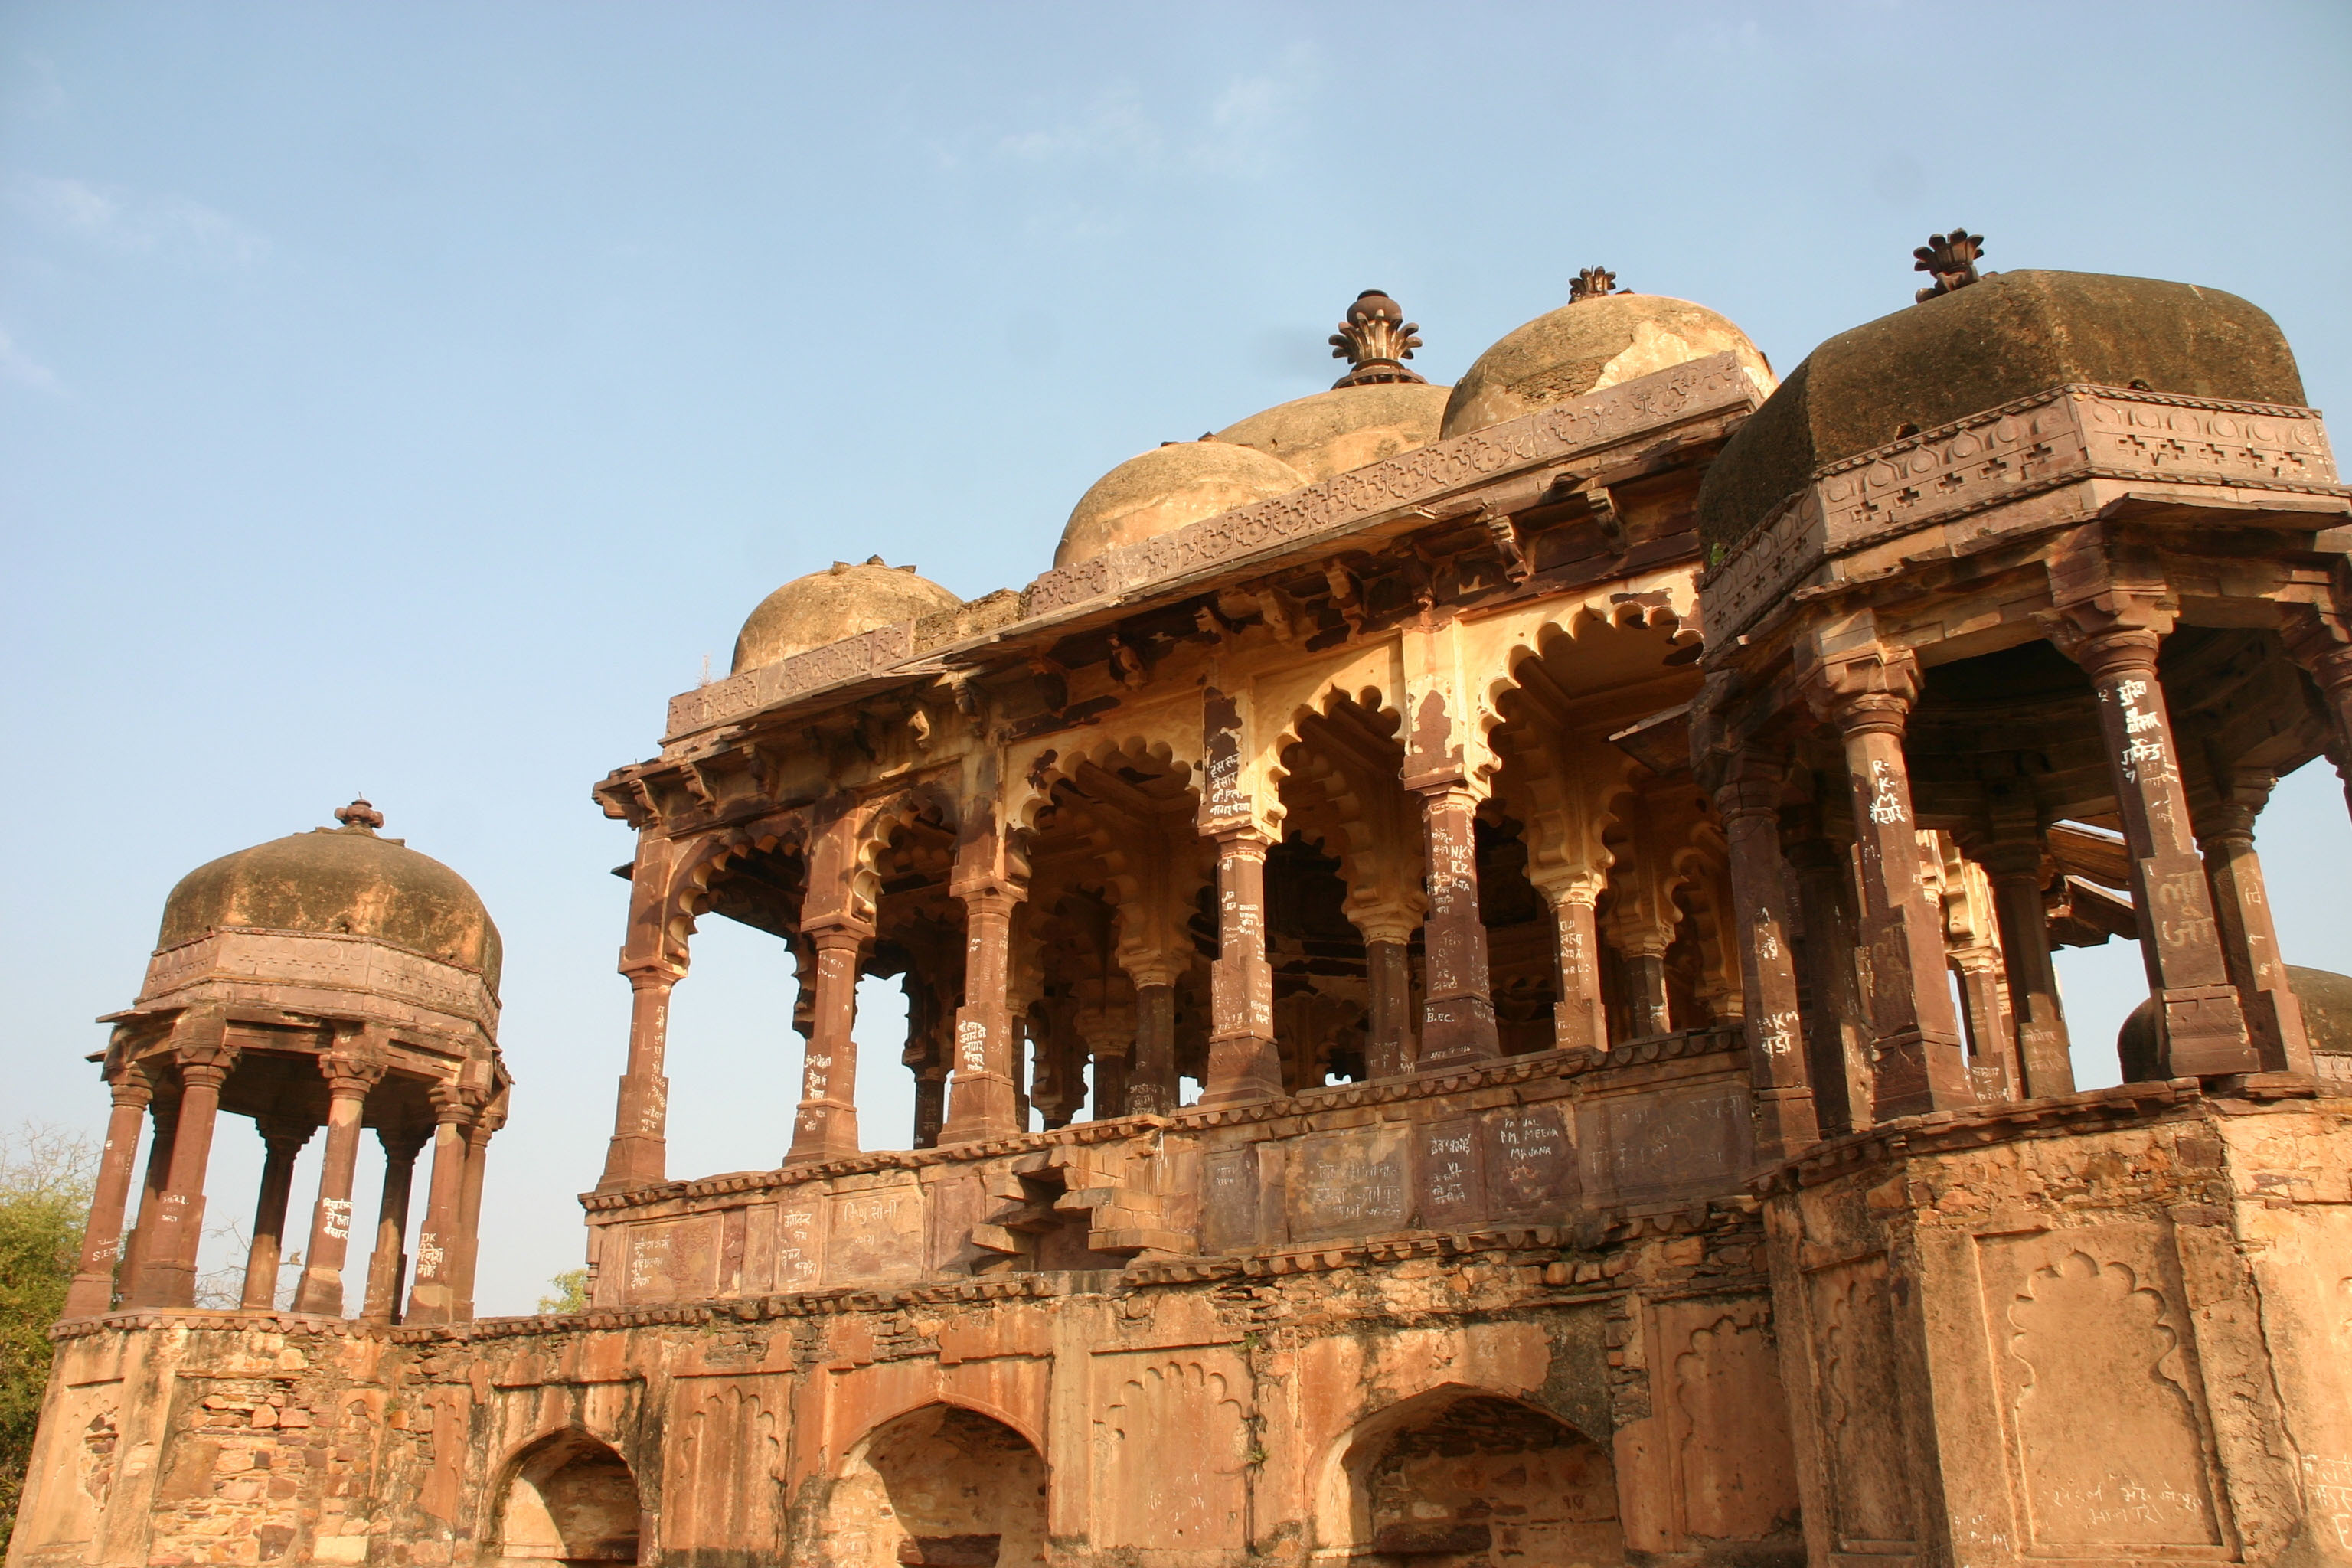 Temple ruins in Ranthambore National Park